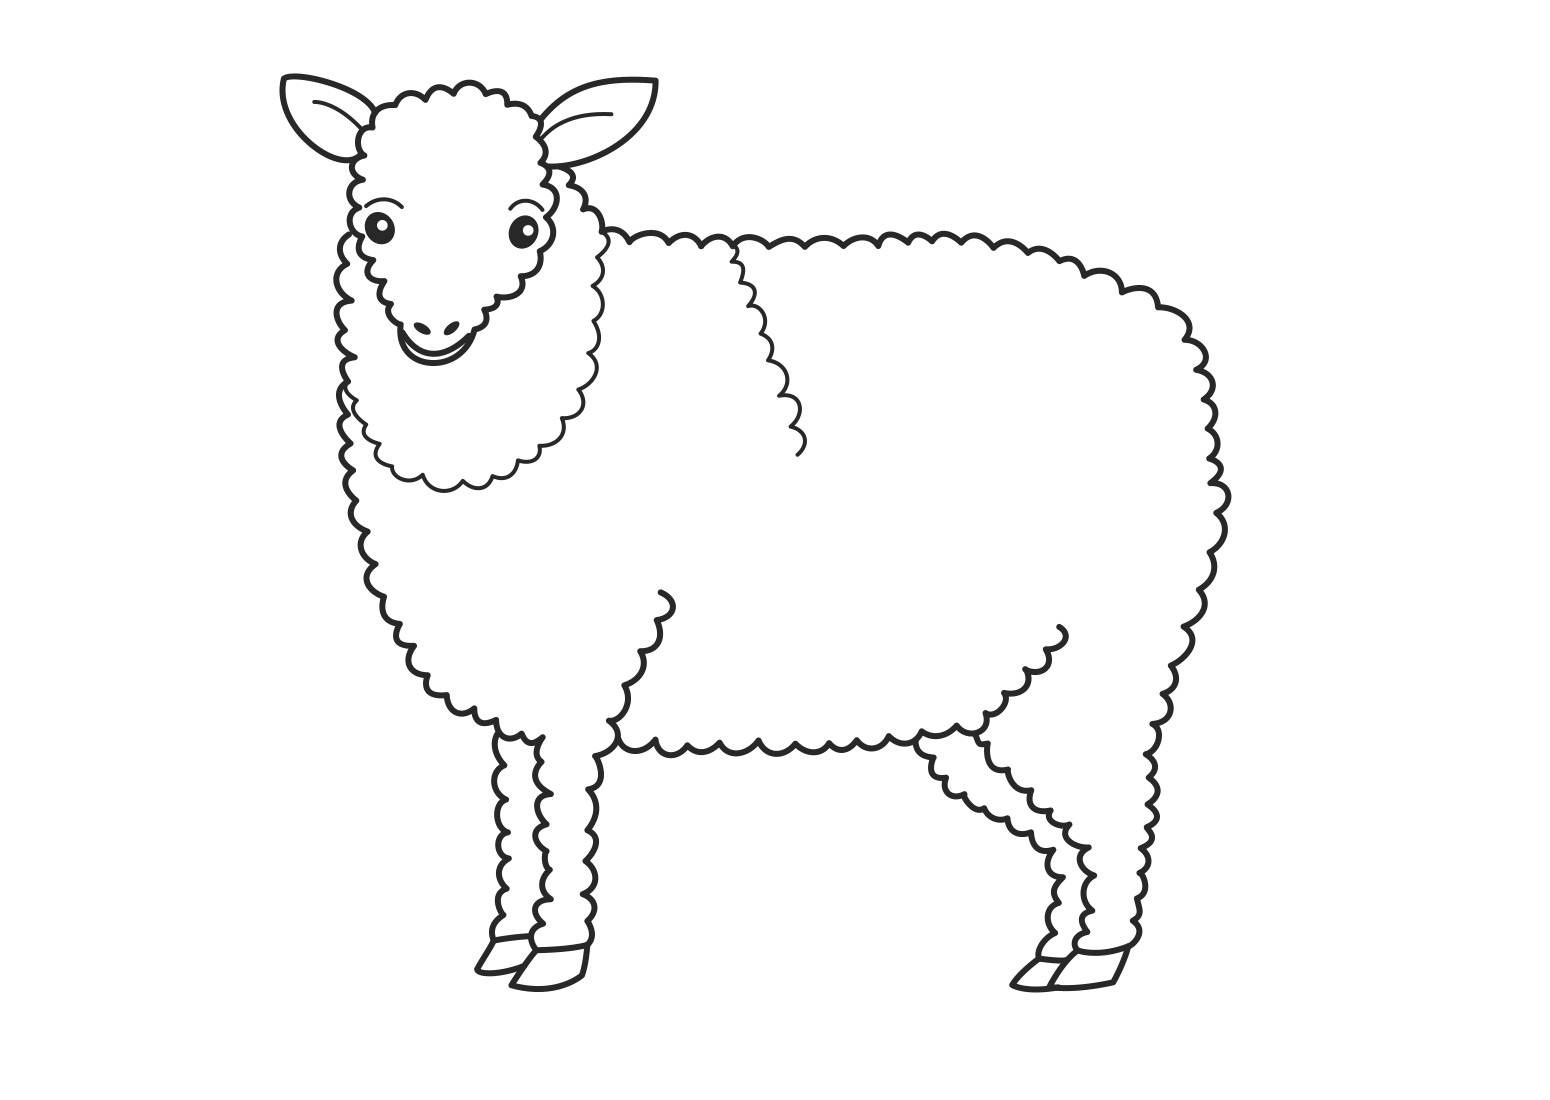 Free Printable Sheep Coloring Pages For Kids - Free Printable Pictures Of Sheep